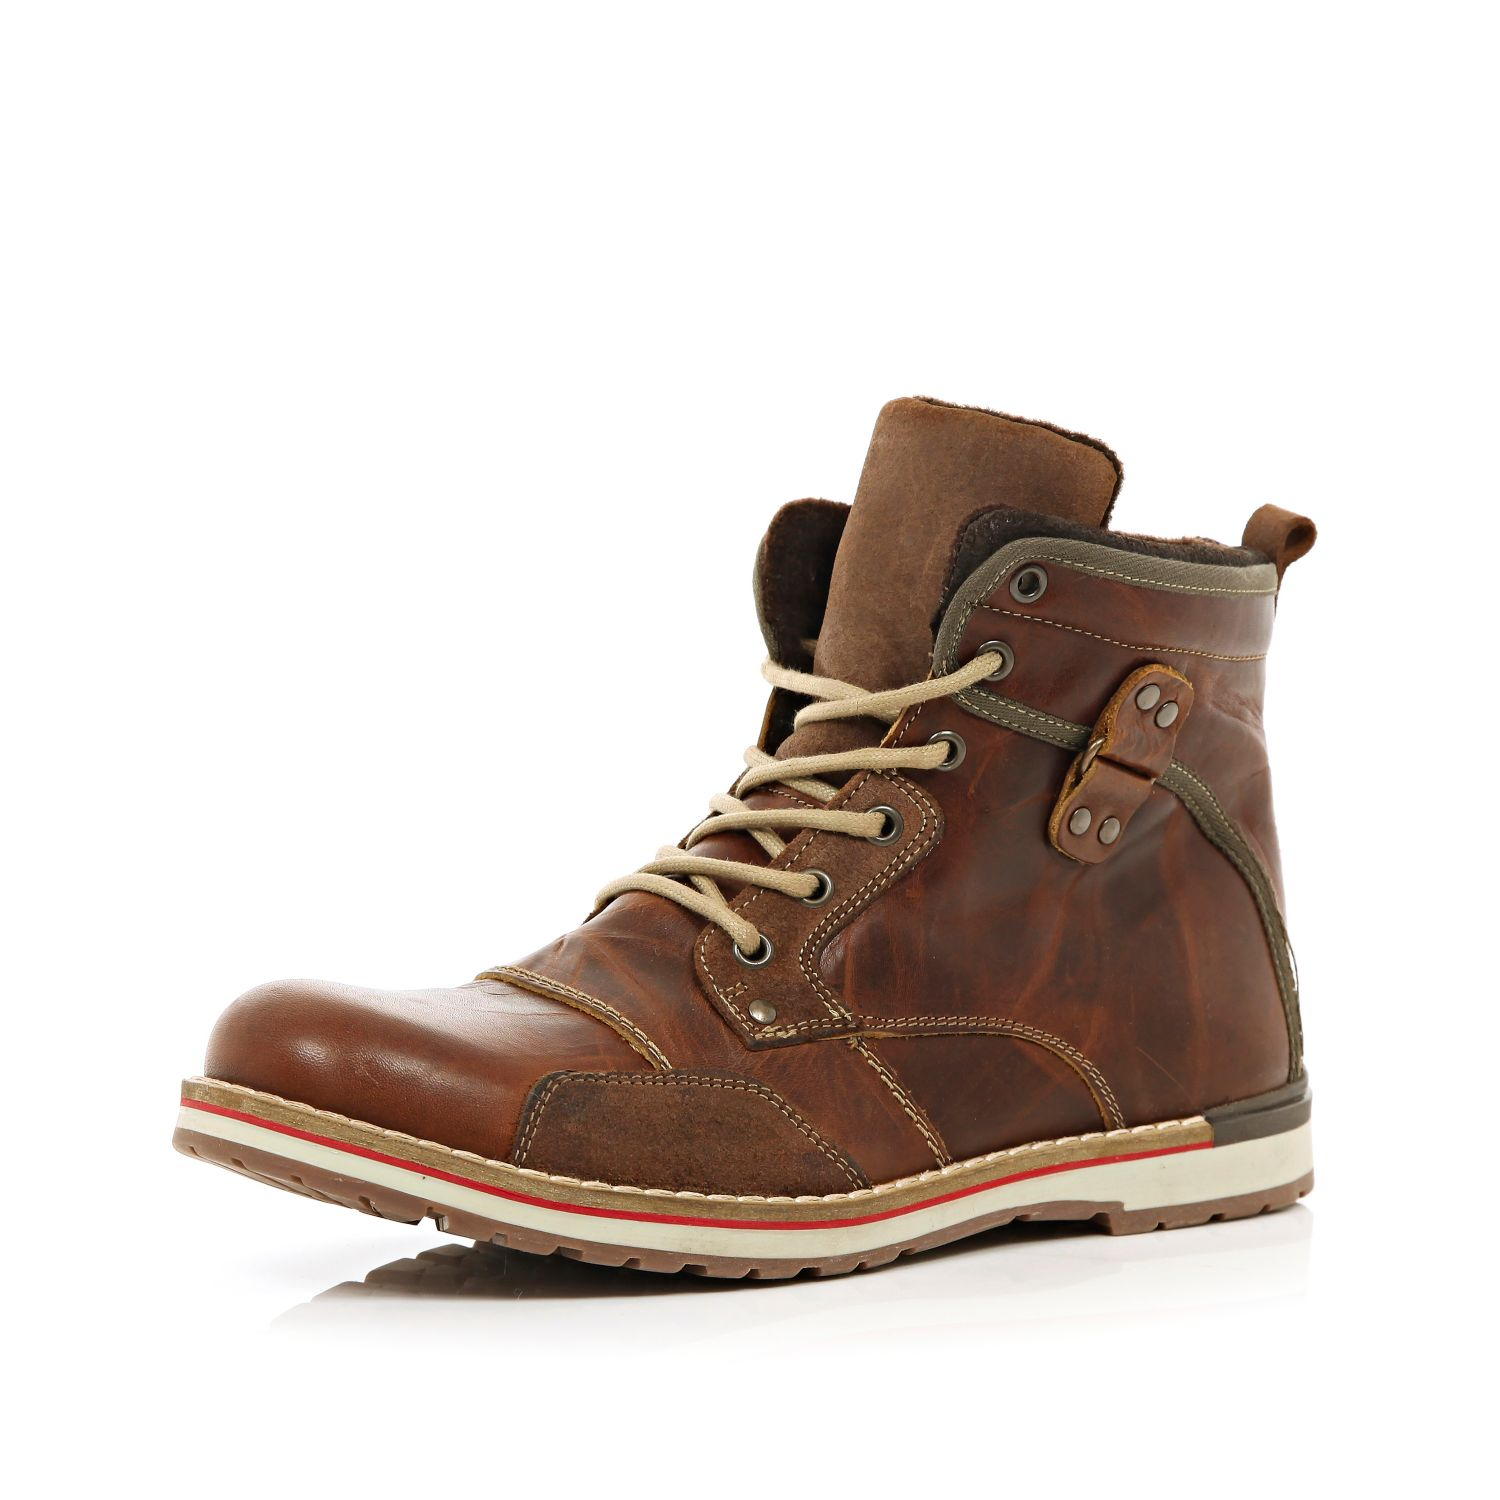 River Island Lace-up boots - brown w1Bszf